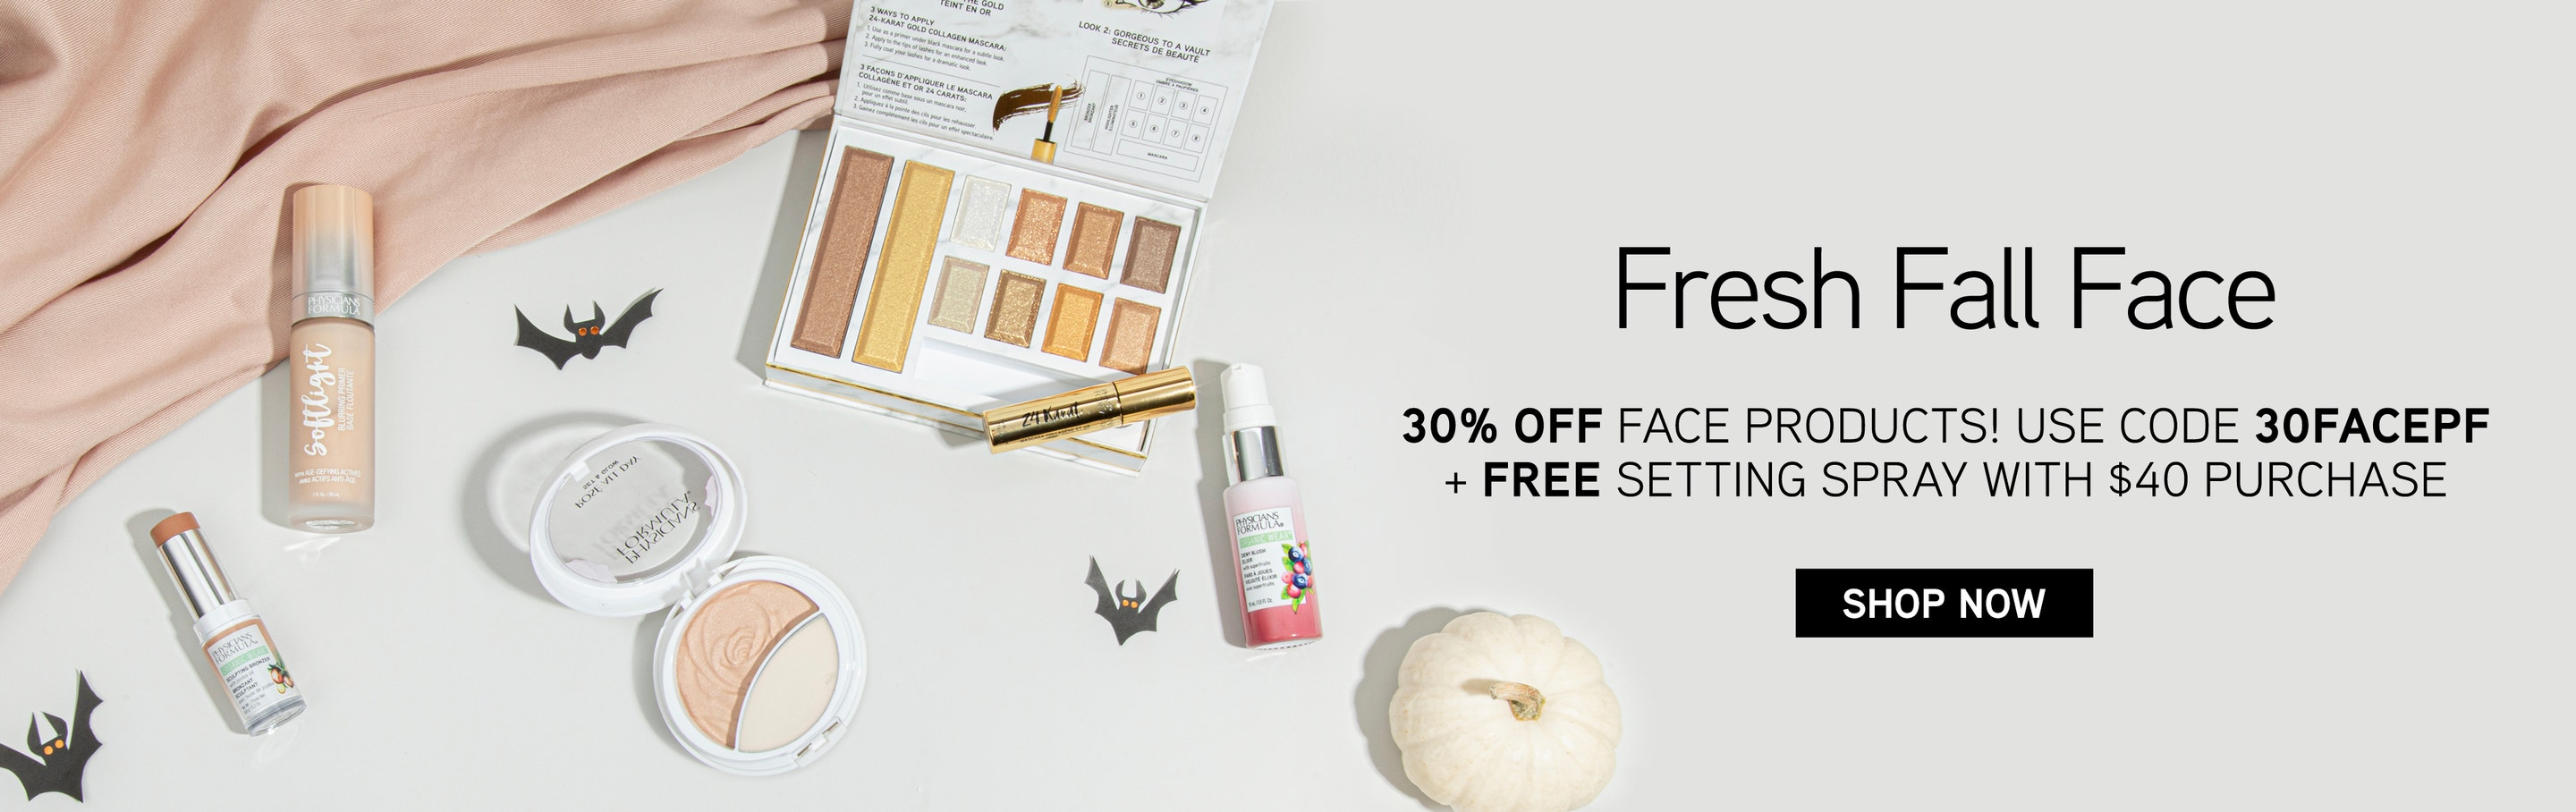 Physicians Formula | Fresh Fall Face - 30% Off Face Products - Use Code: 30FACEPF = Free Setting Spray with $40 Purchase! Shop Now and save on your favorite Bronzers, Highlighters and more! Products scattered with bats and pumpkins and white background